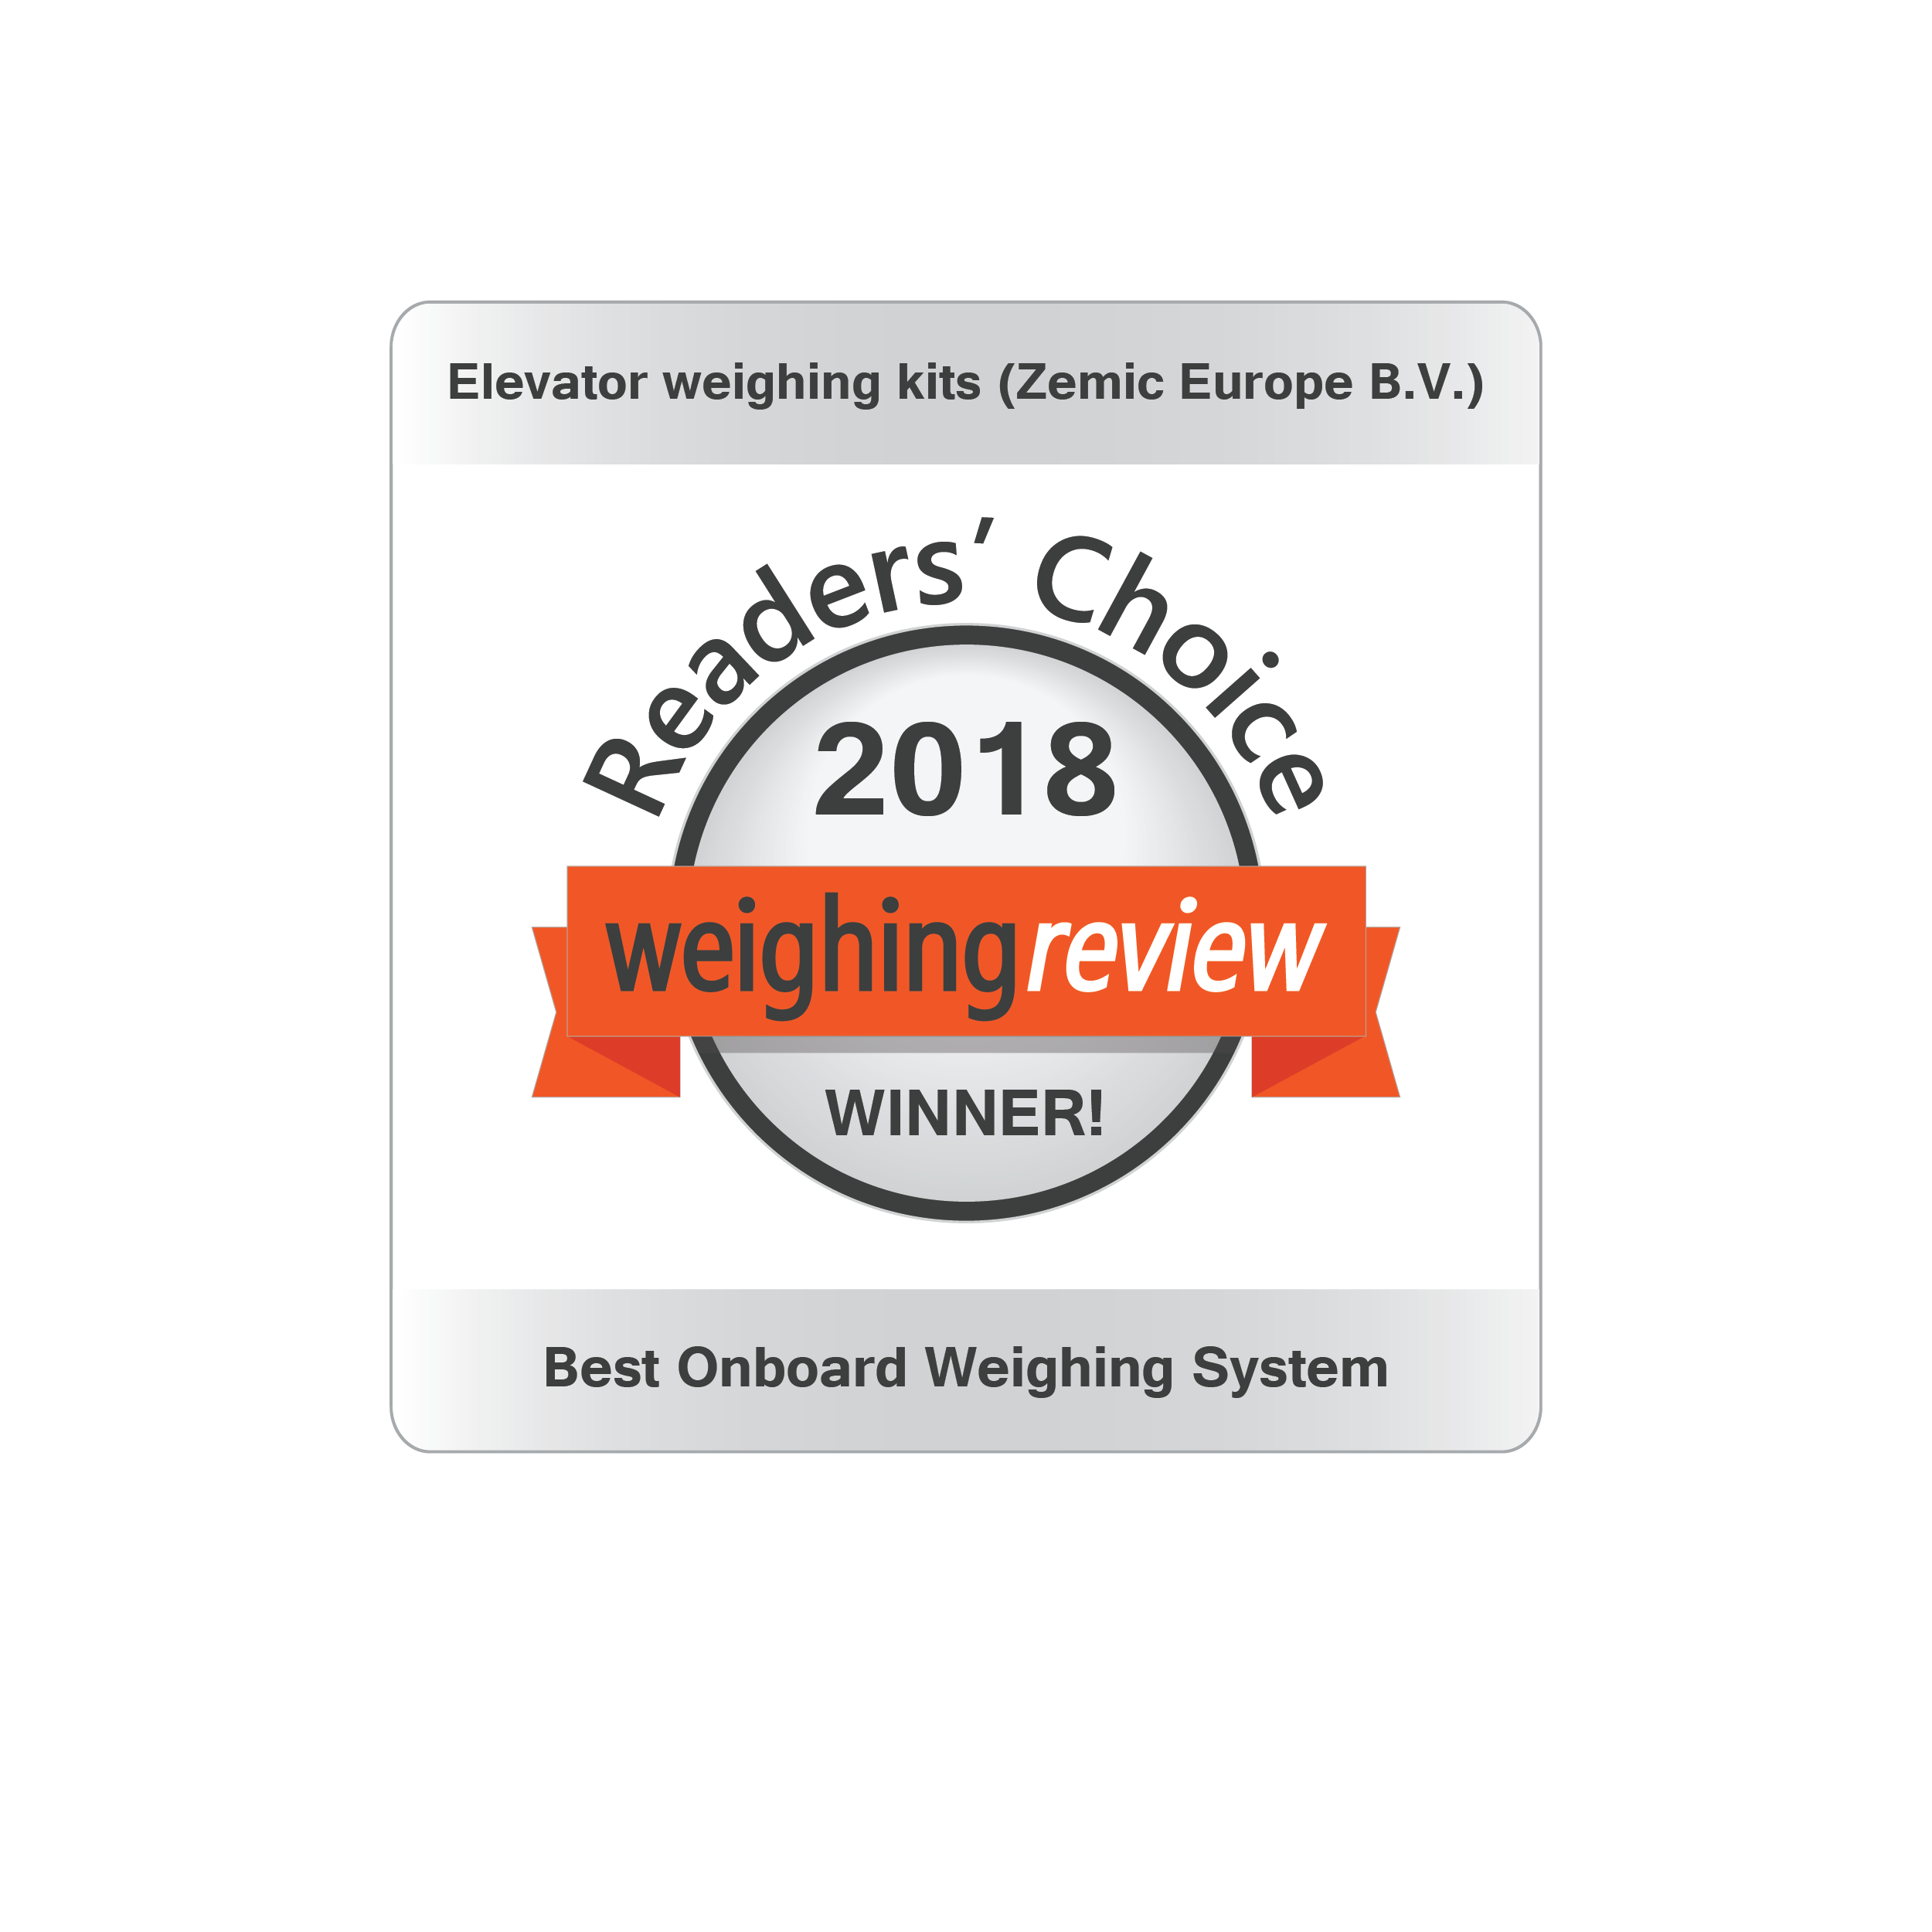 Weighing Review Awards Winner 2018